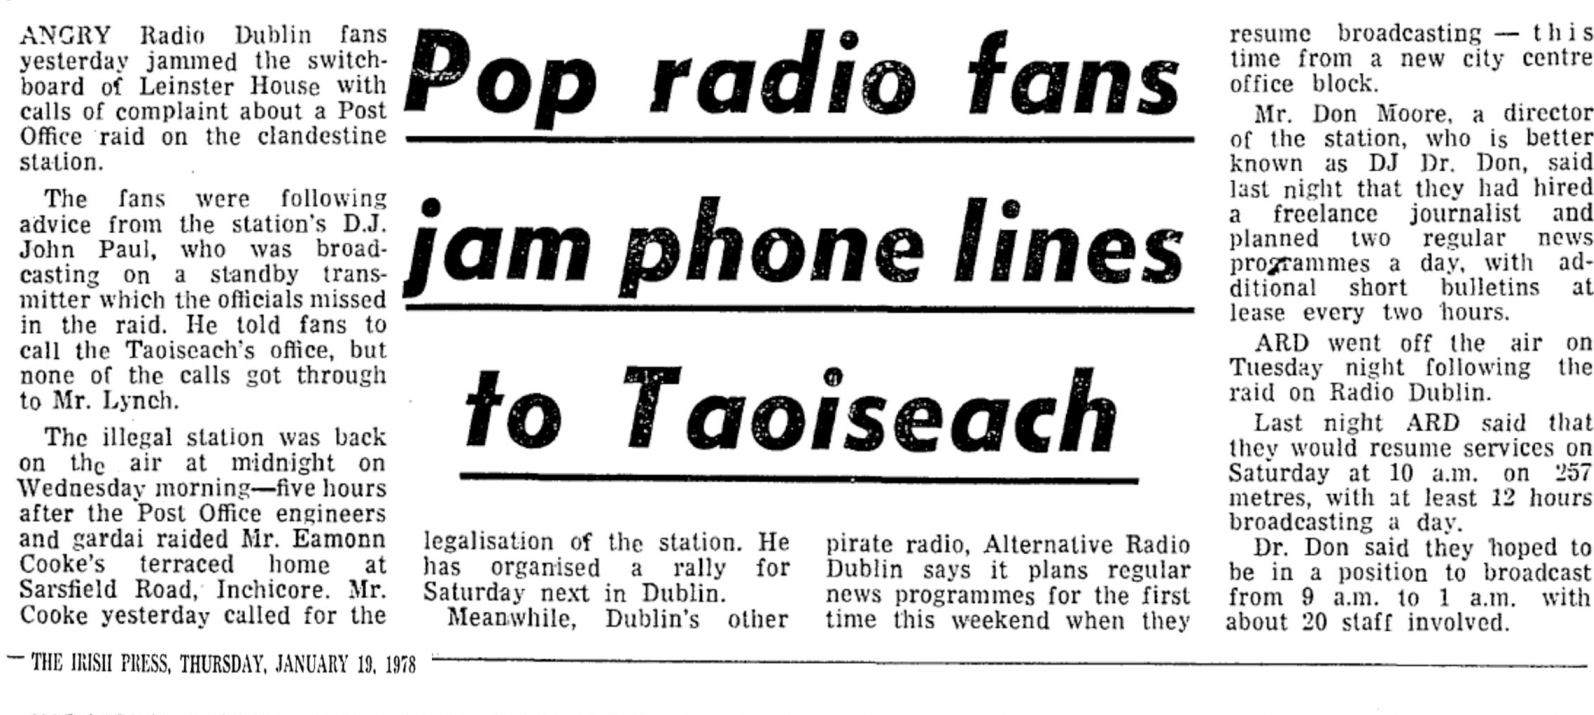 Pop radio fans jam phone lines to Taoiseach was a newspaper headline from The Irish Press dated January 19th 1978